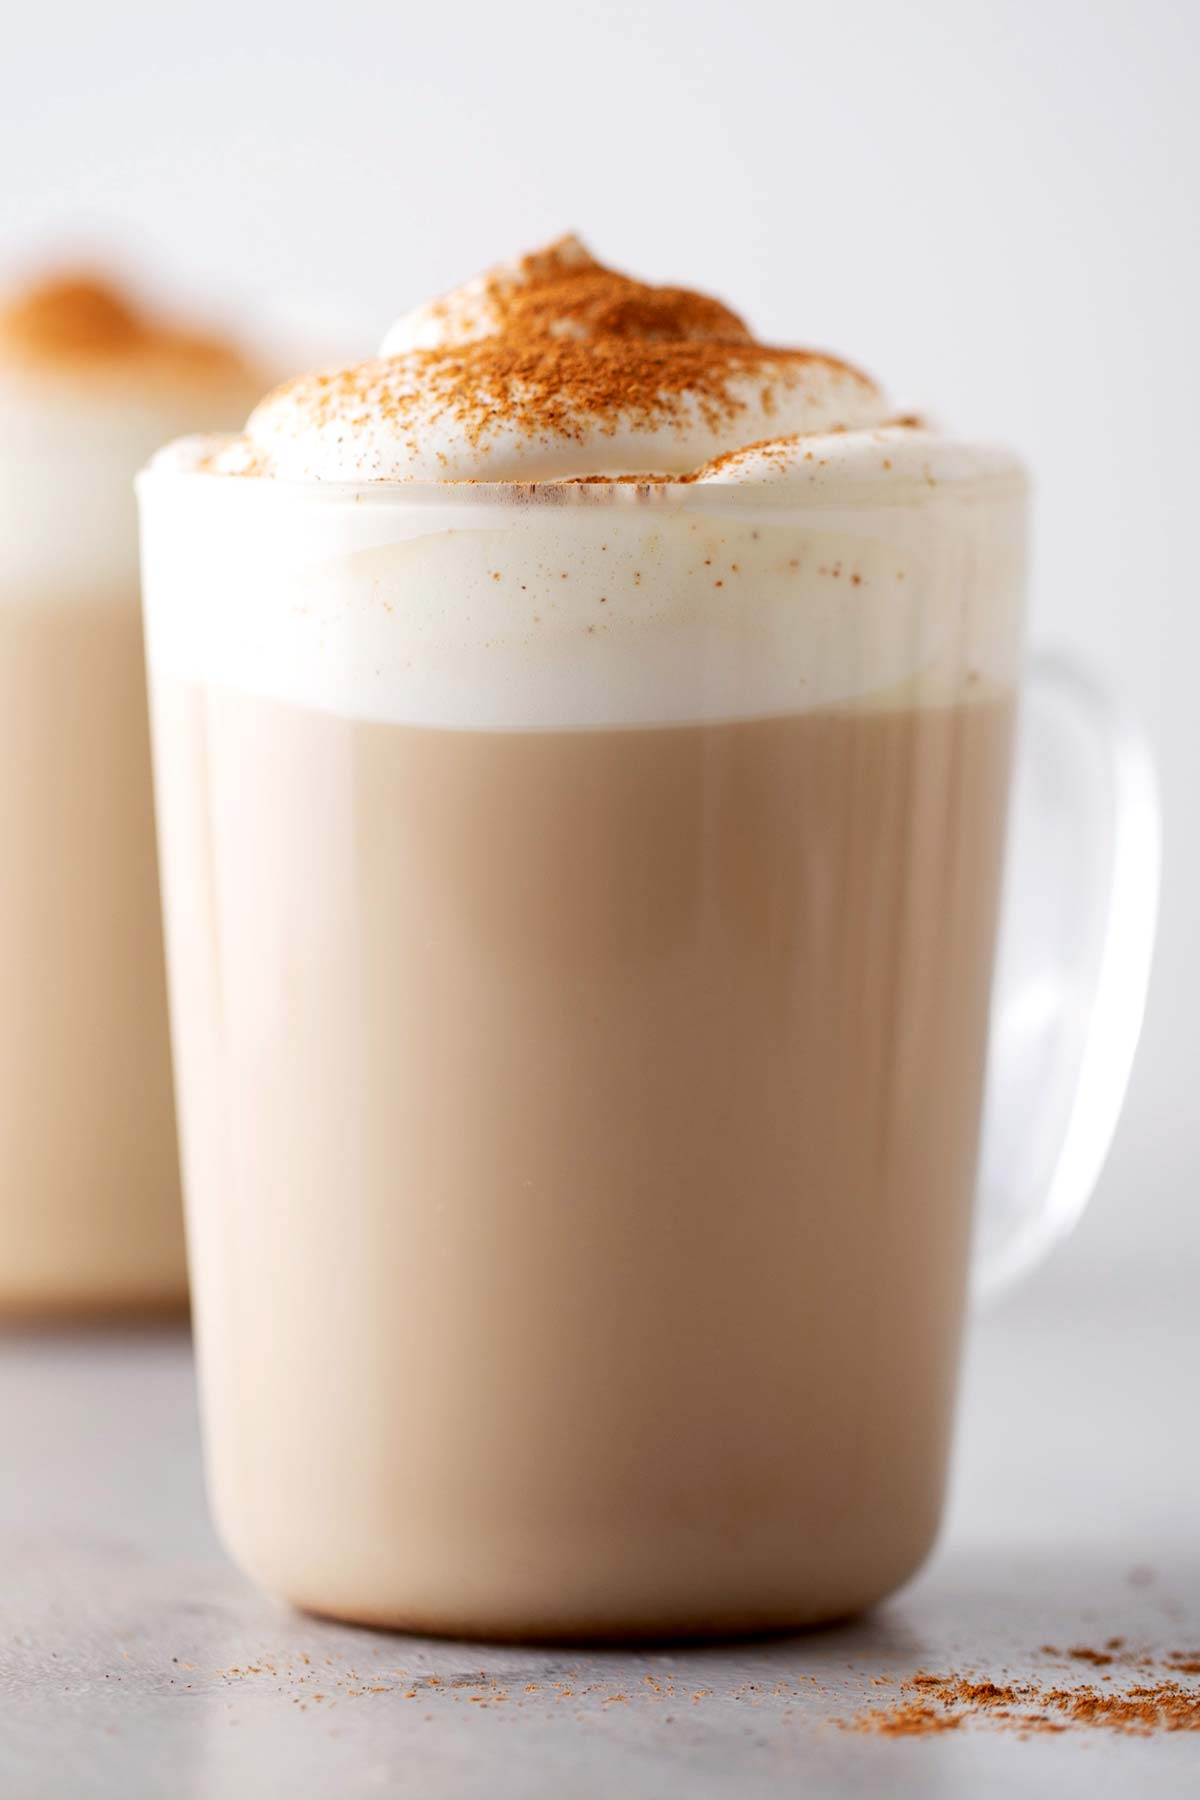 Pumpkin Spice Latte in a cup with whipped cream.